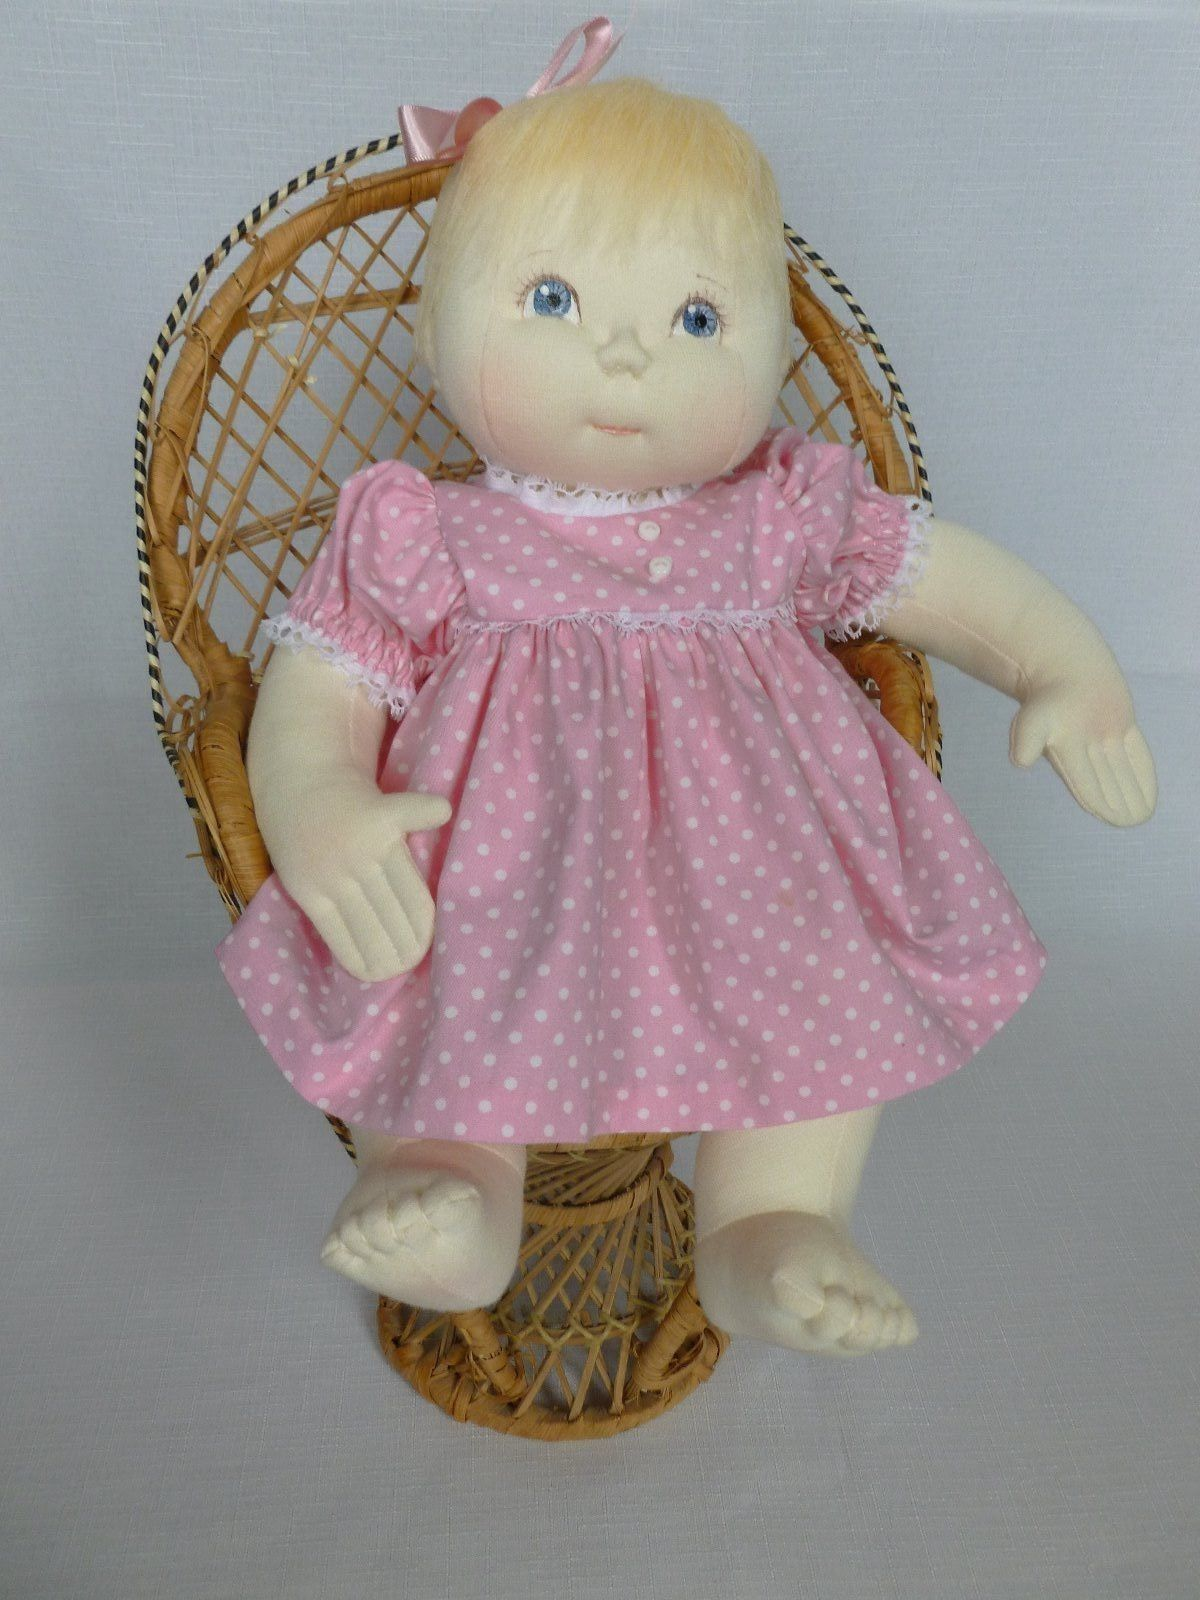 "PATSY A 15"" handmade rag cloth needle sculpture baby doll by Brenda"